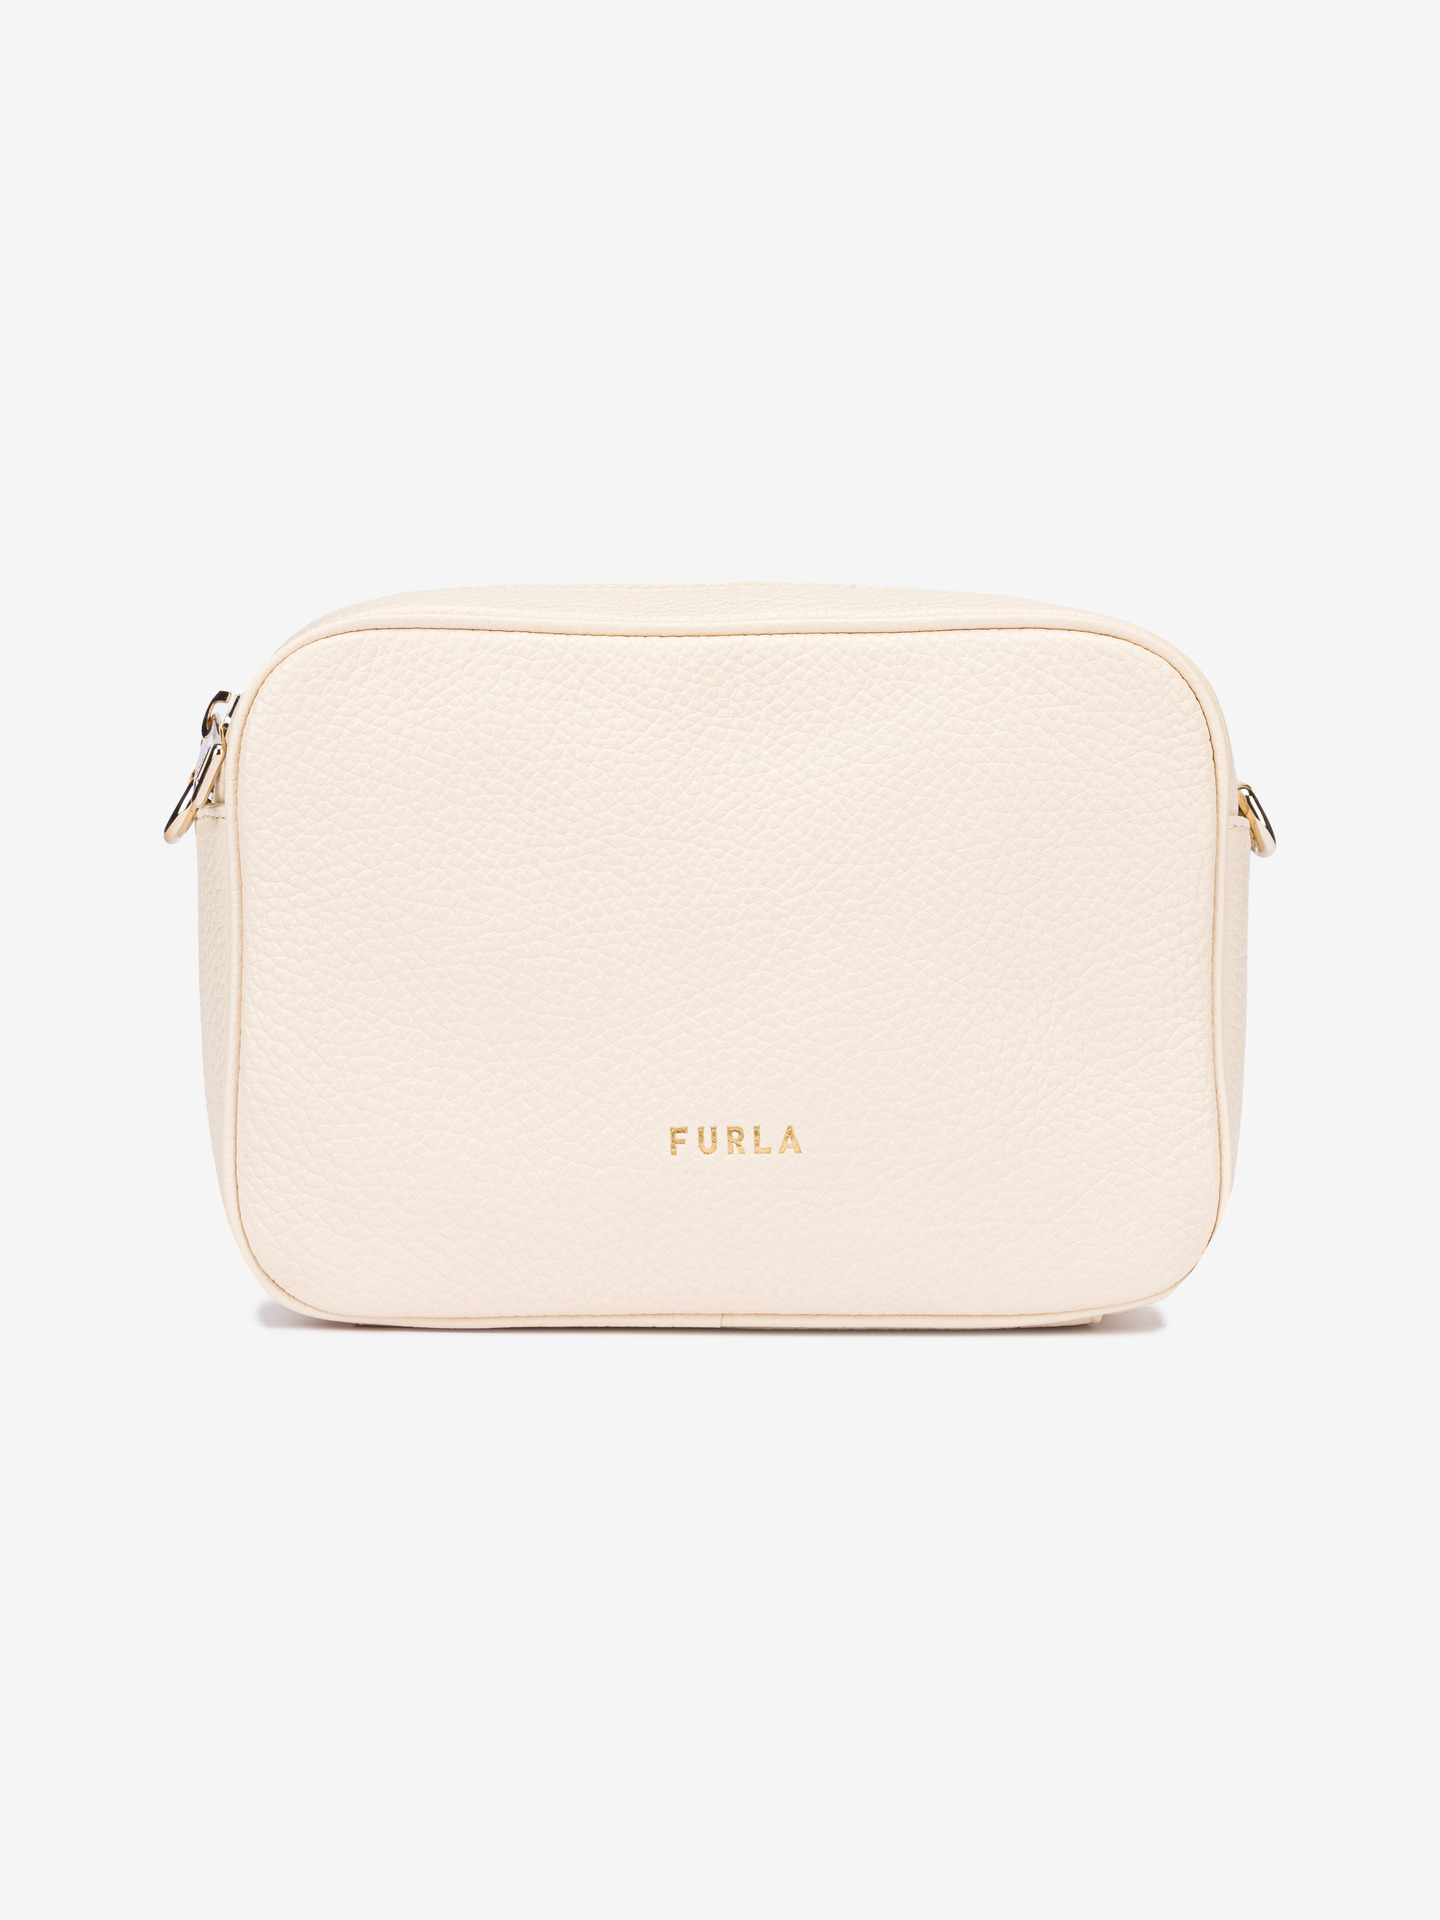 Real Mini Cross body bag Furla Béžová